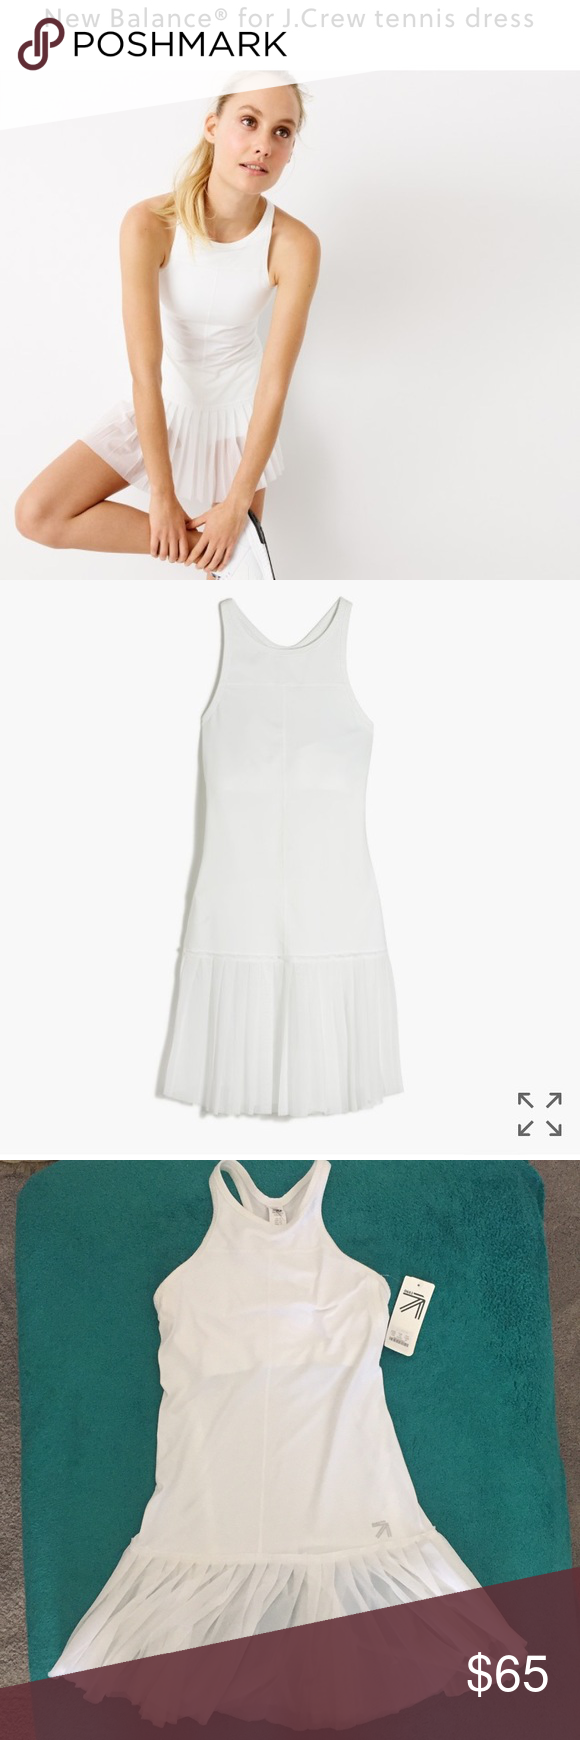 New Balance For J Crew Tennis Dress Tennis Dress Dresses Sheer Skirt